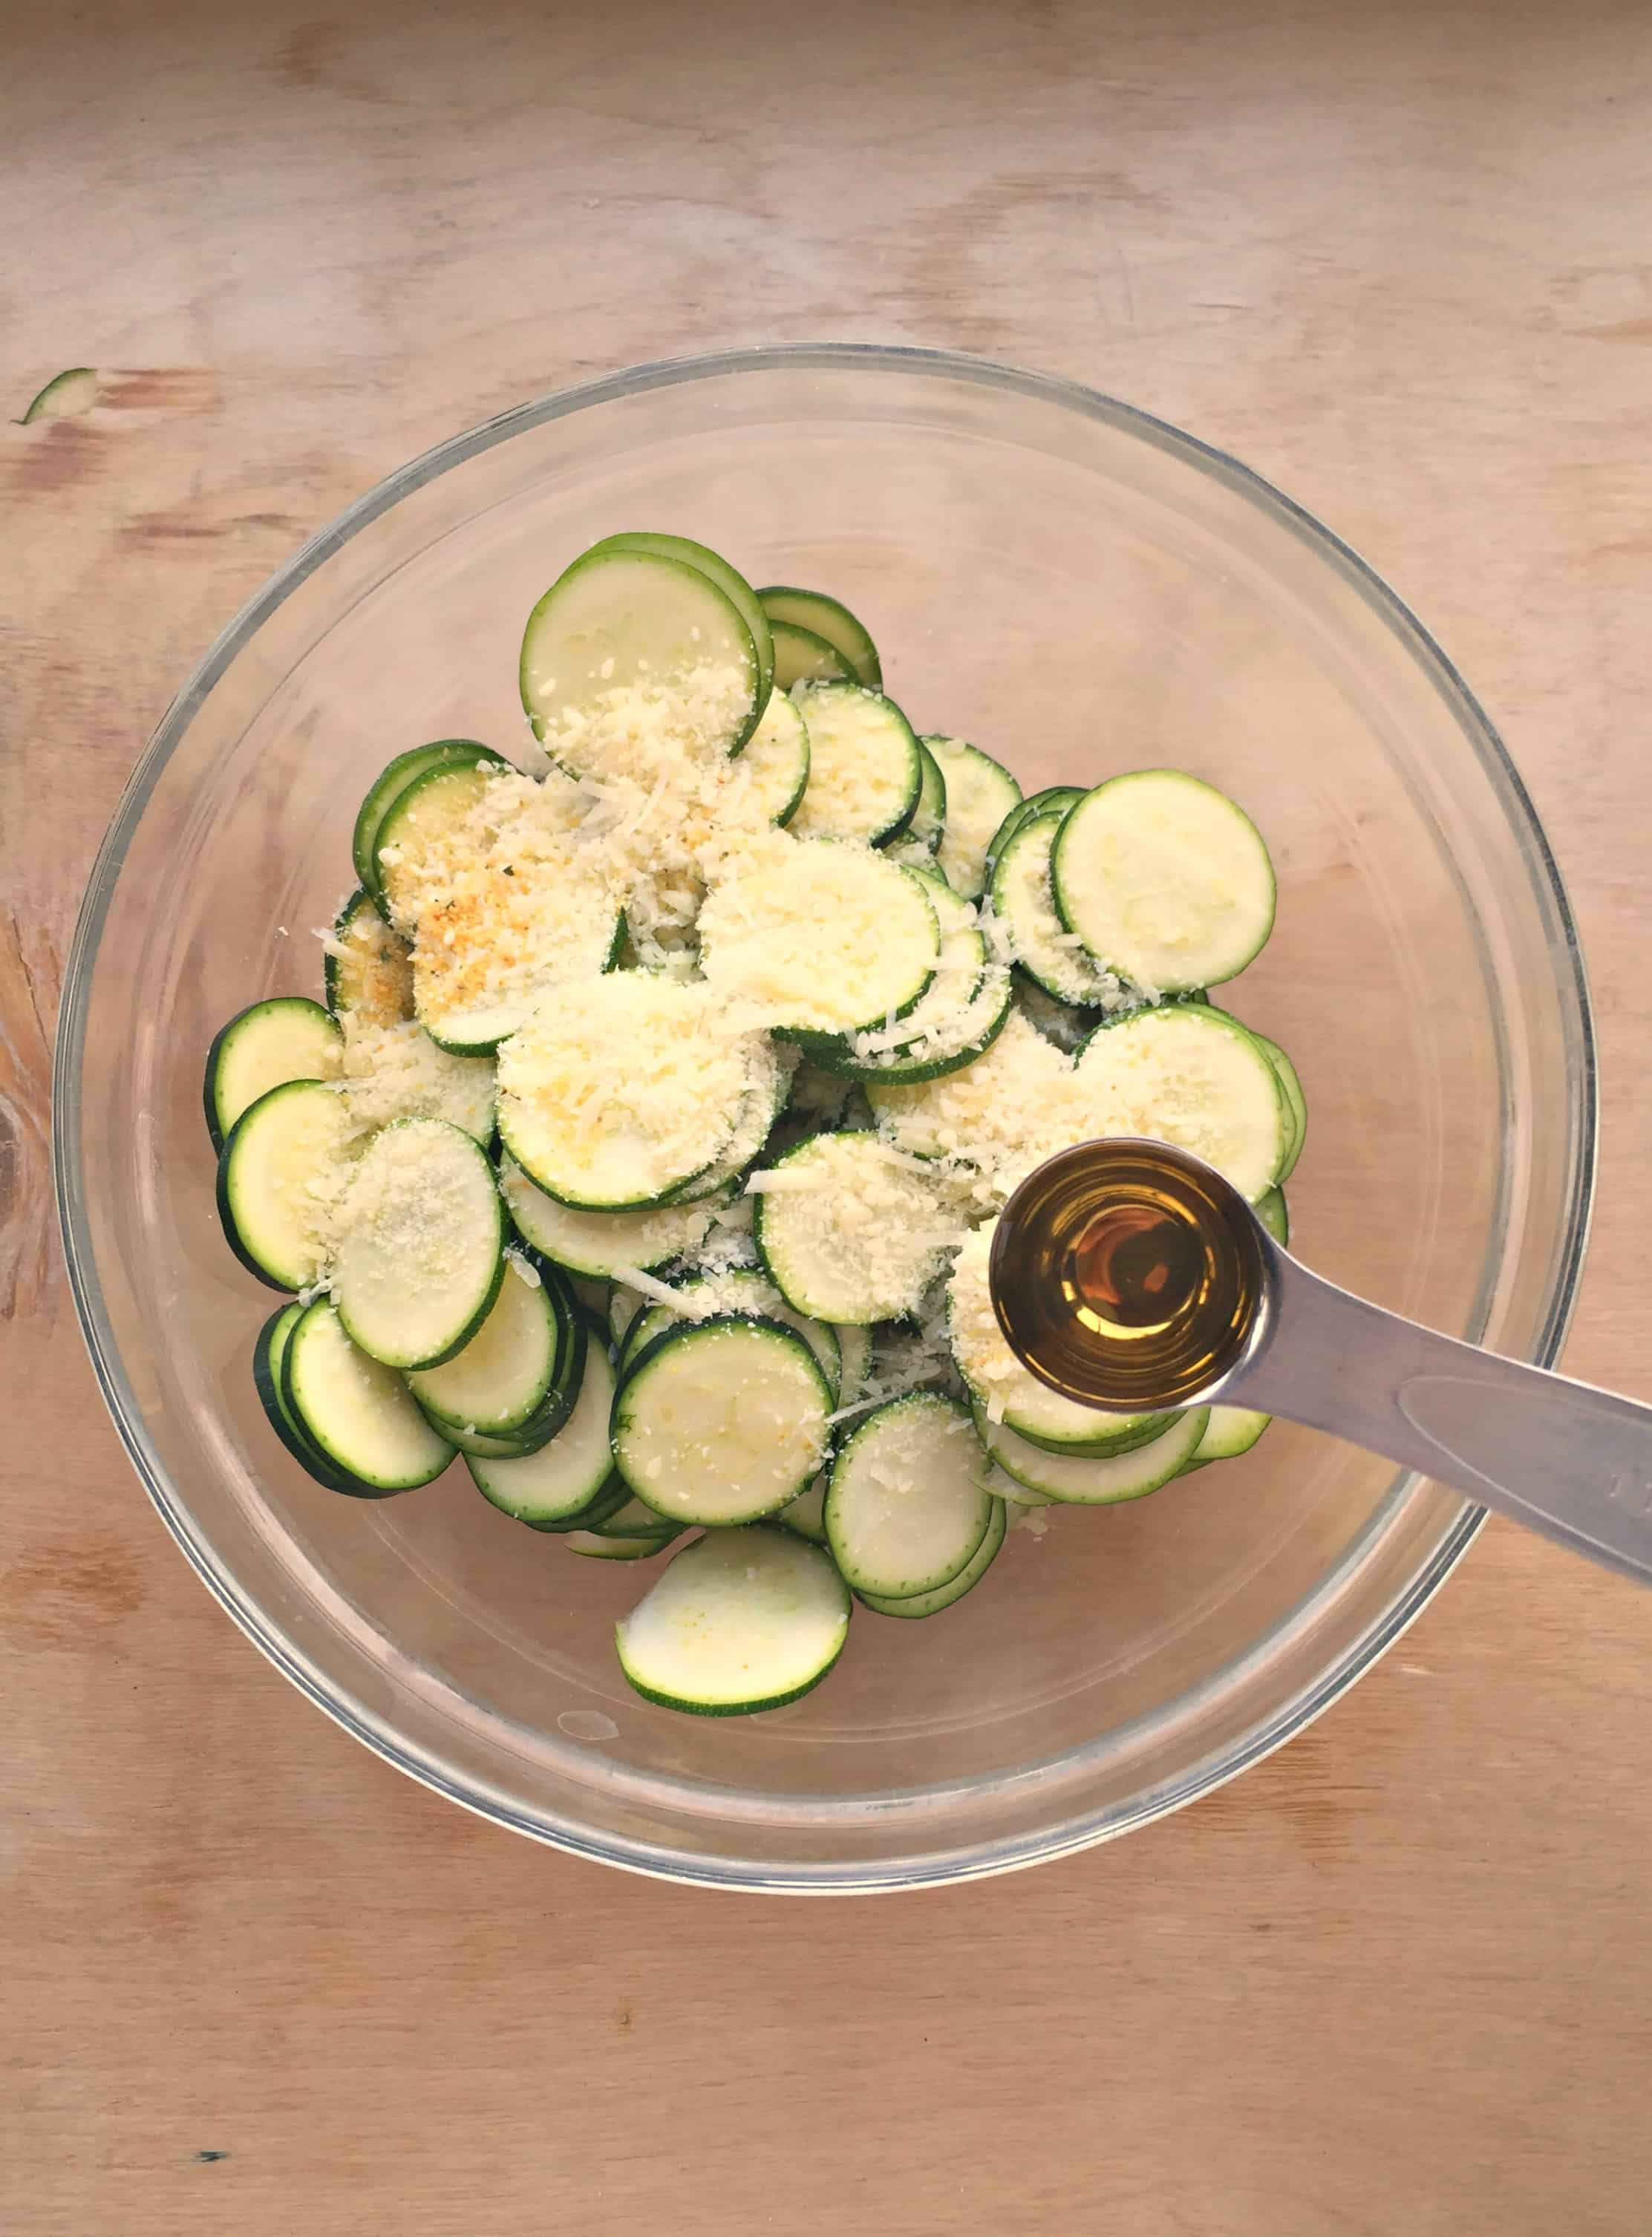 zucchini chips in a bowl with seasoning